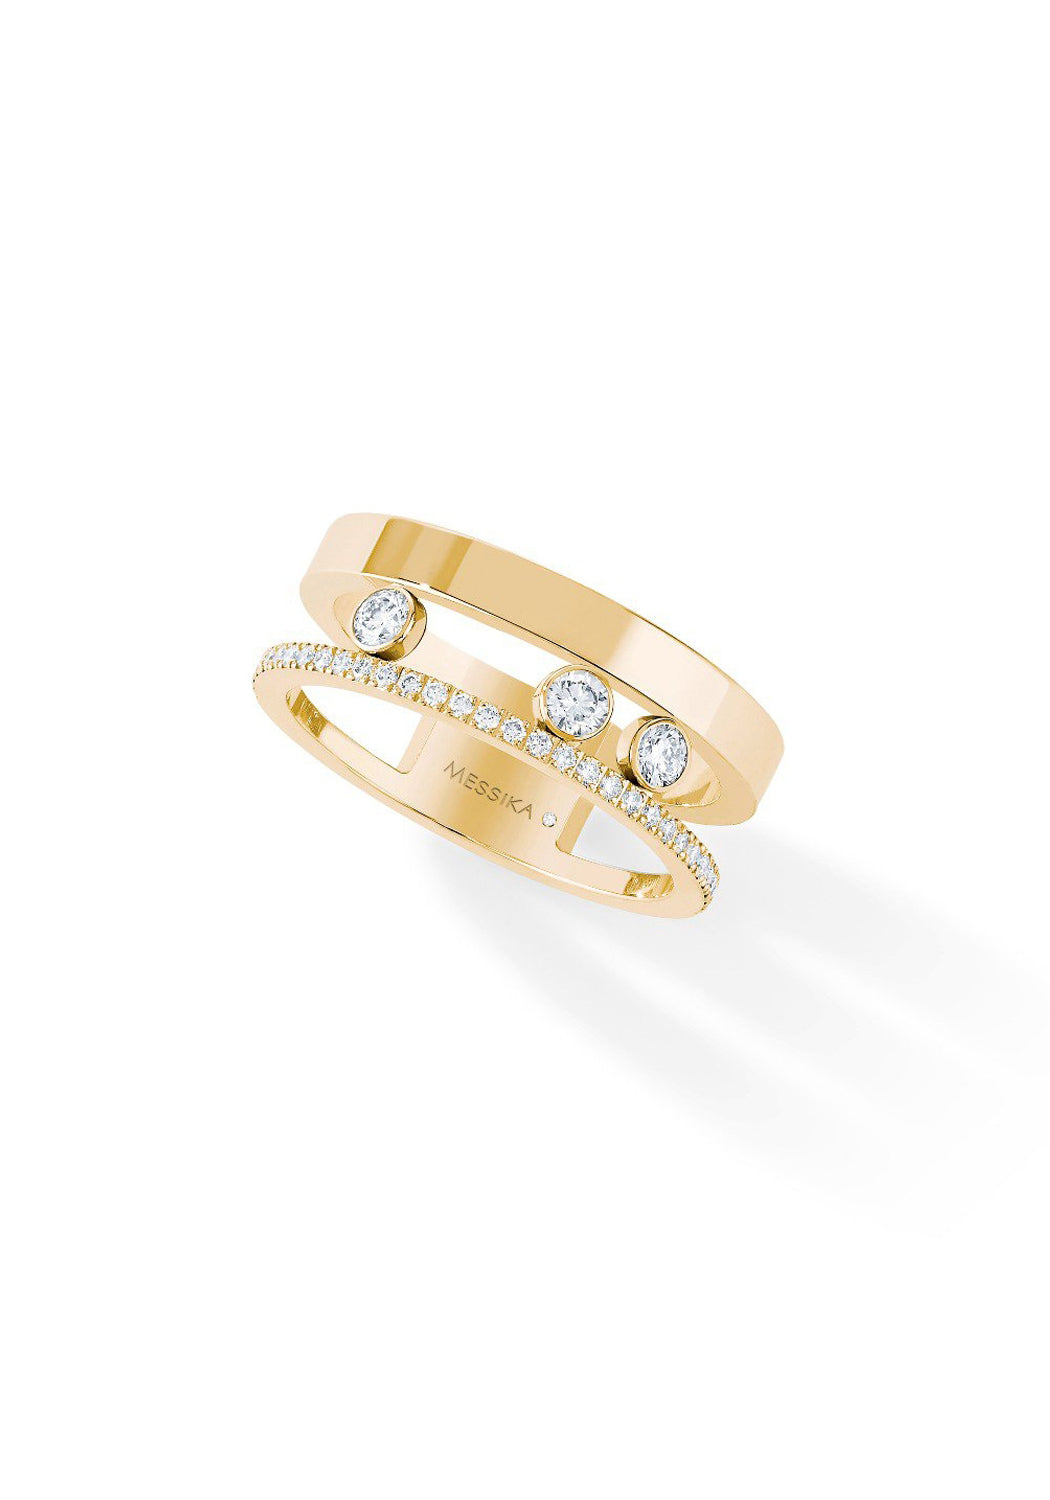 Messika Move Romane Diamond Ring